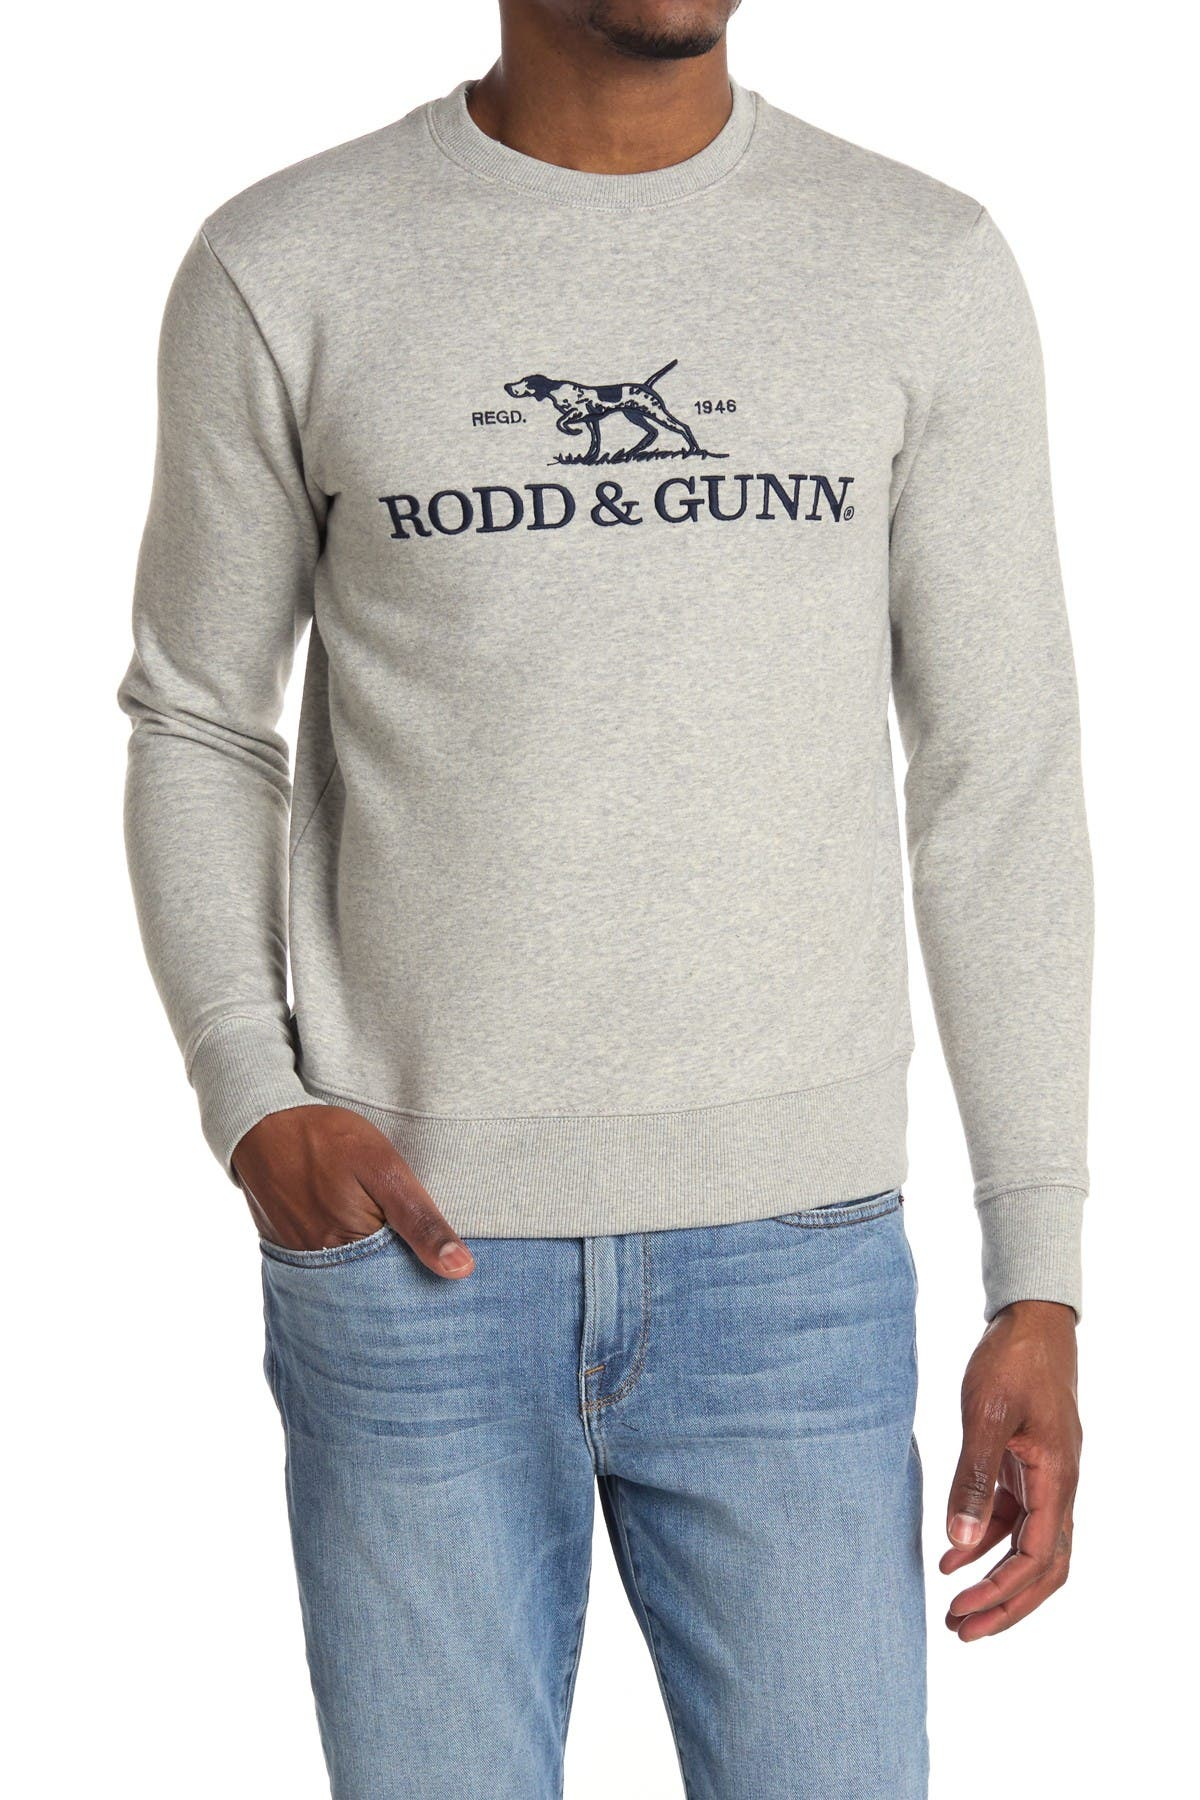 RODD AND GUNN Embroidered Logo Sweatshirt at Nordstrom Rack